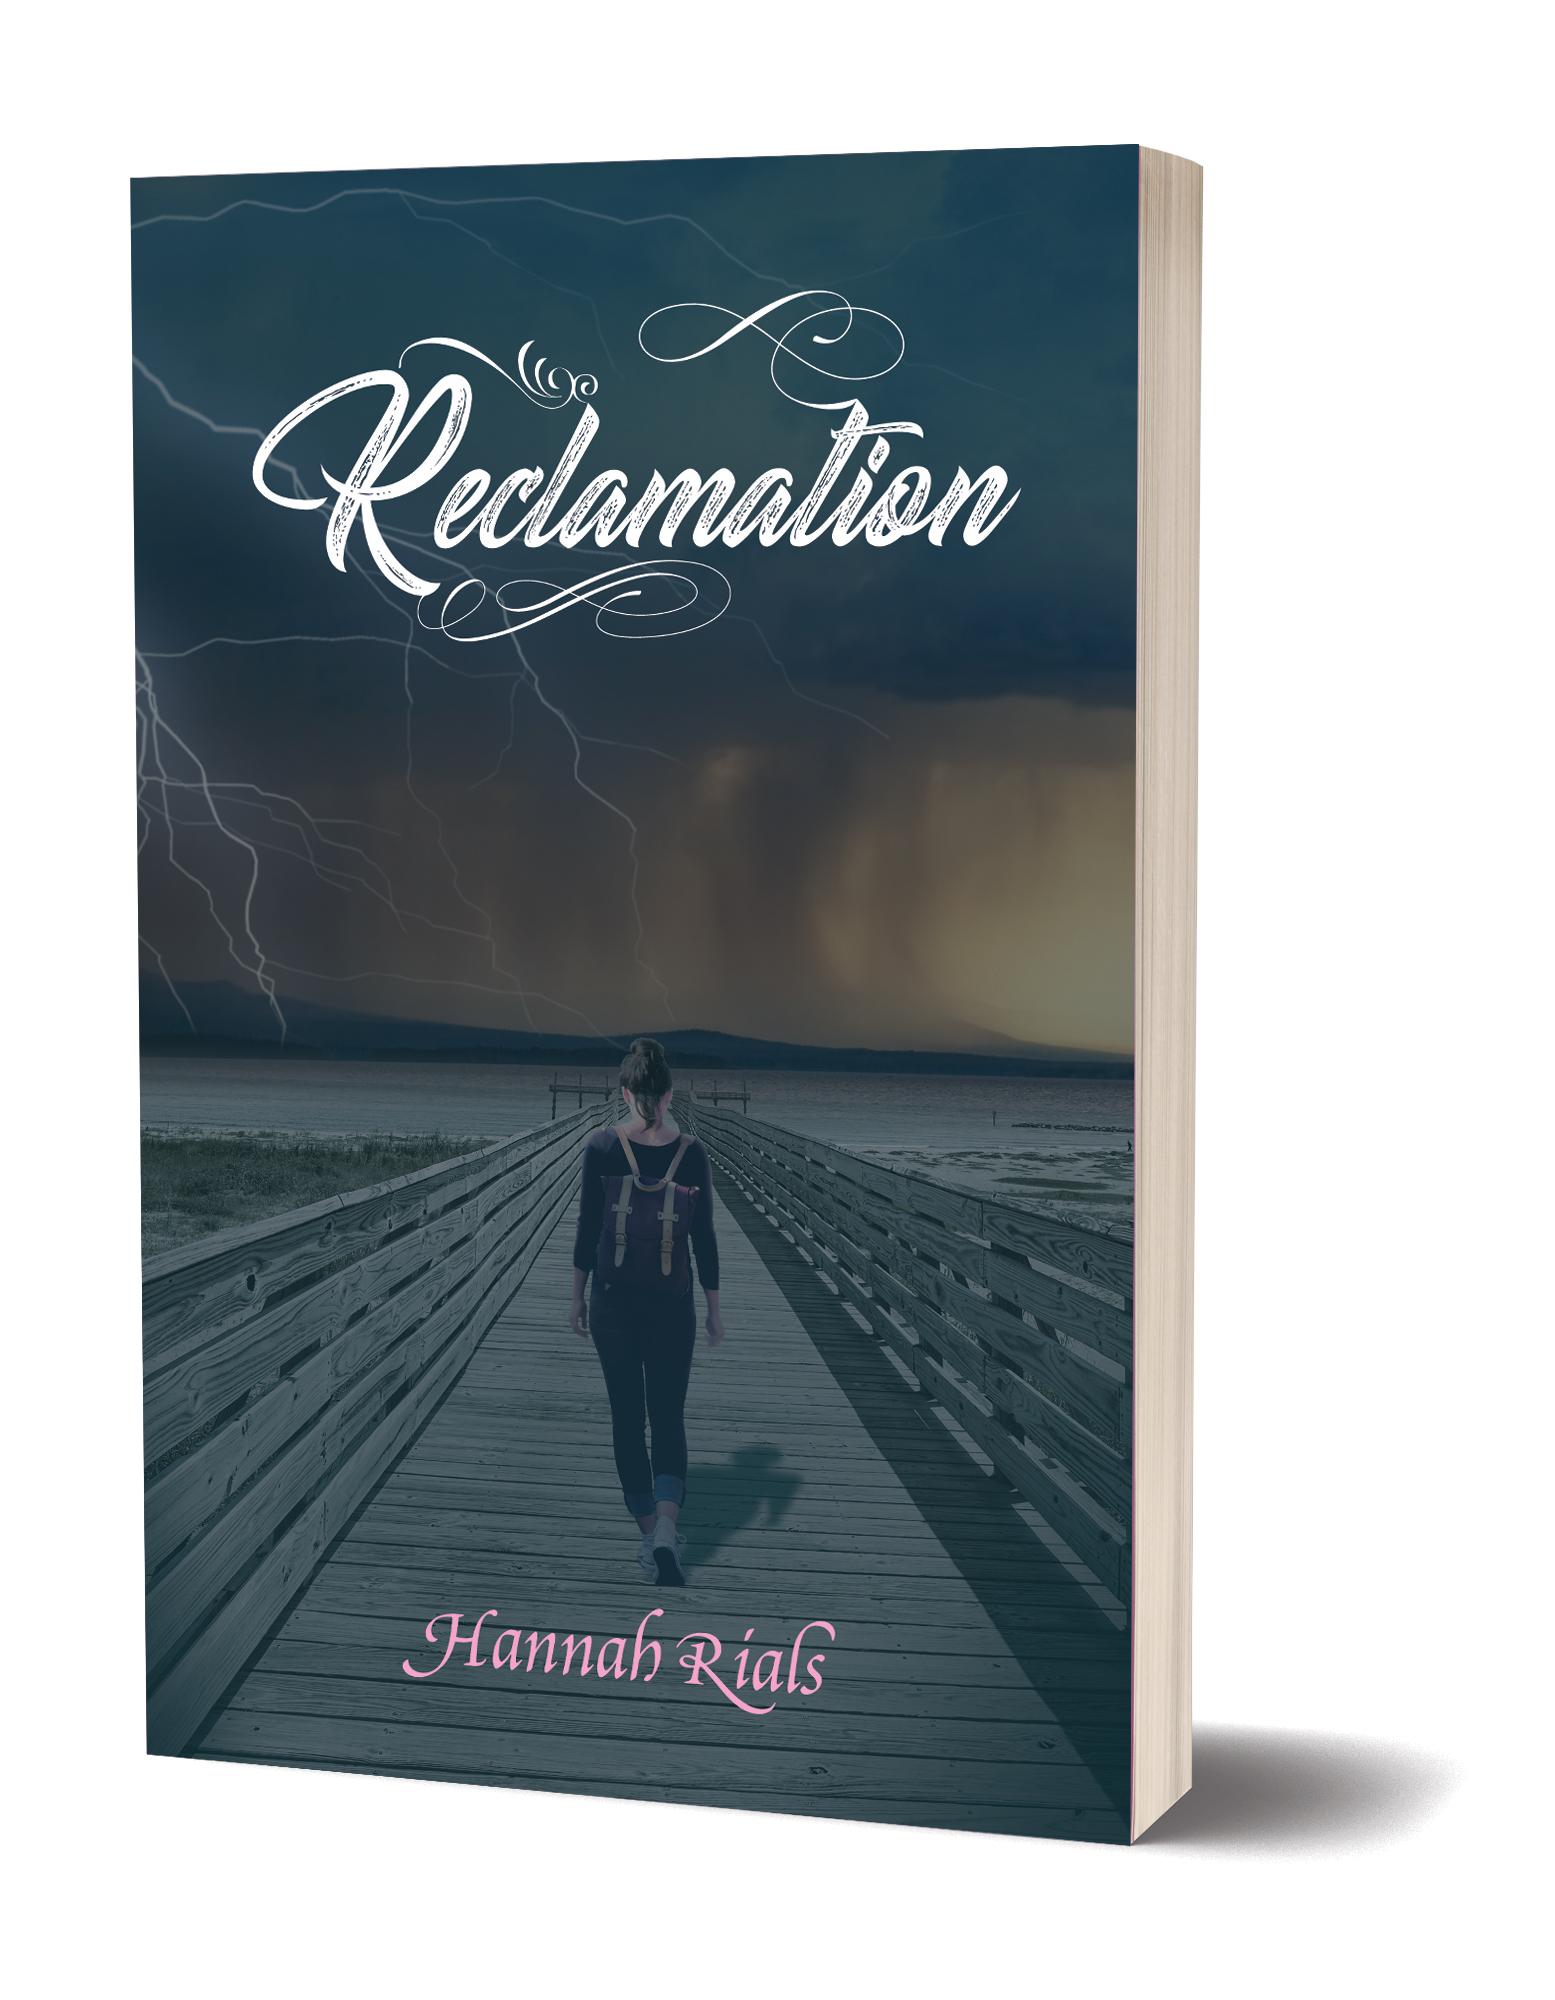 Reclamation by Hannah Rials